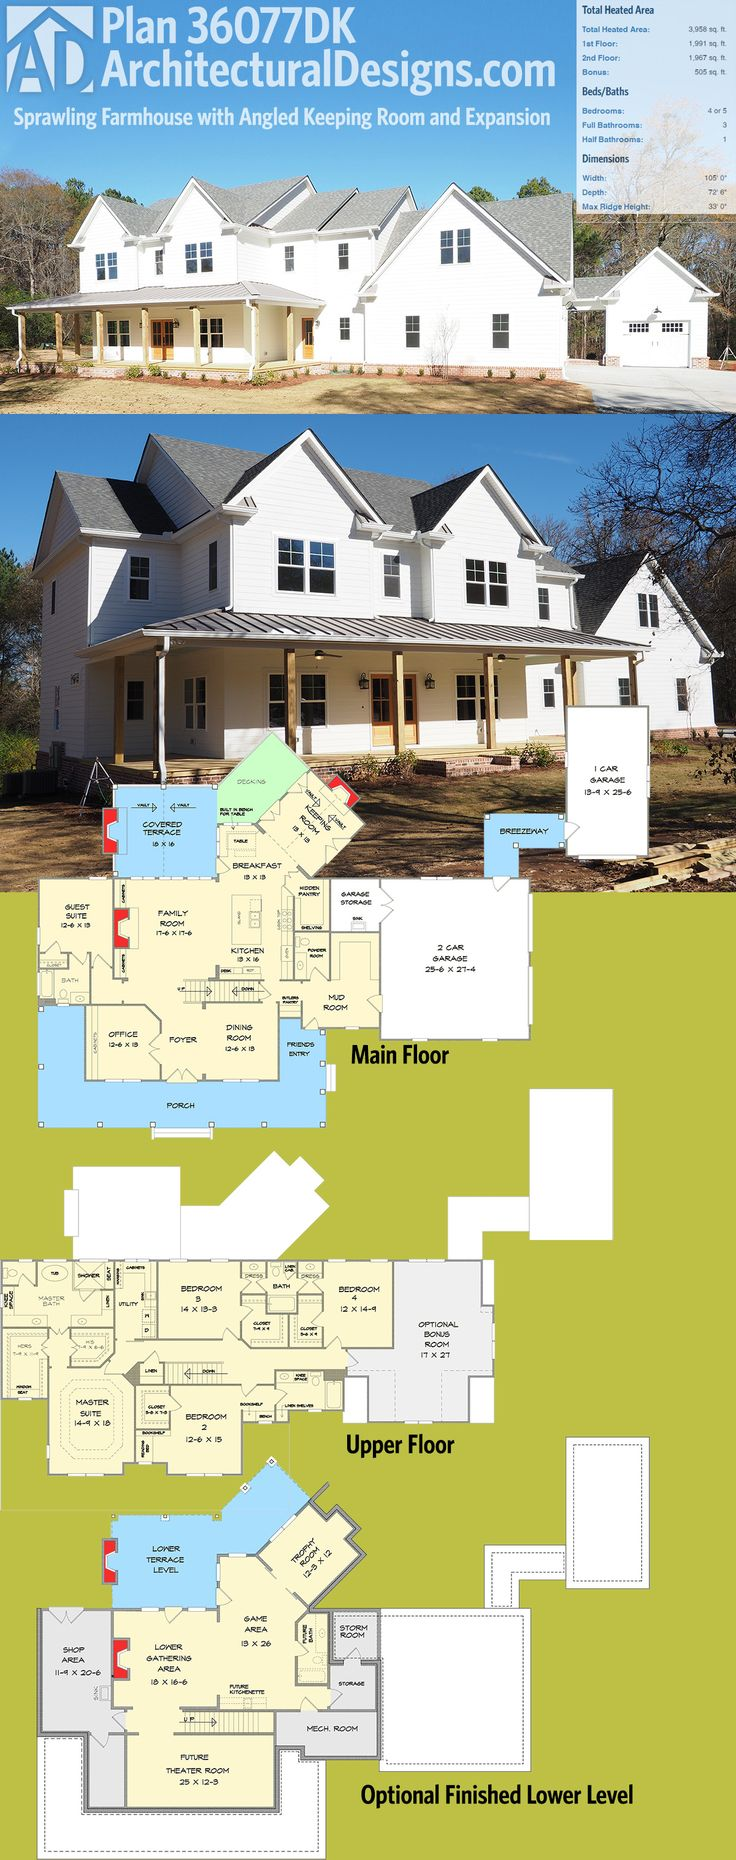 best 25 open floor house plans ideas on pinterest open concept architectural designs house plan 36077dk is a sprawling farmhouse plan with an angled keeping room and